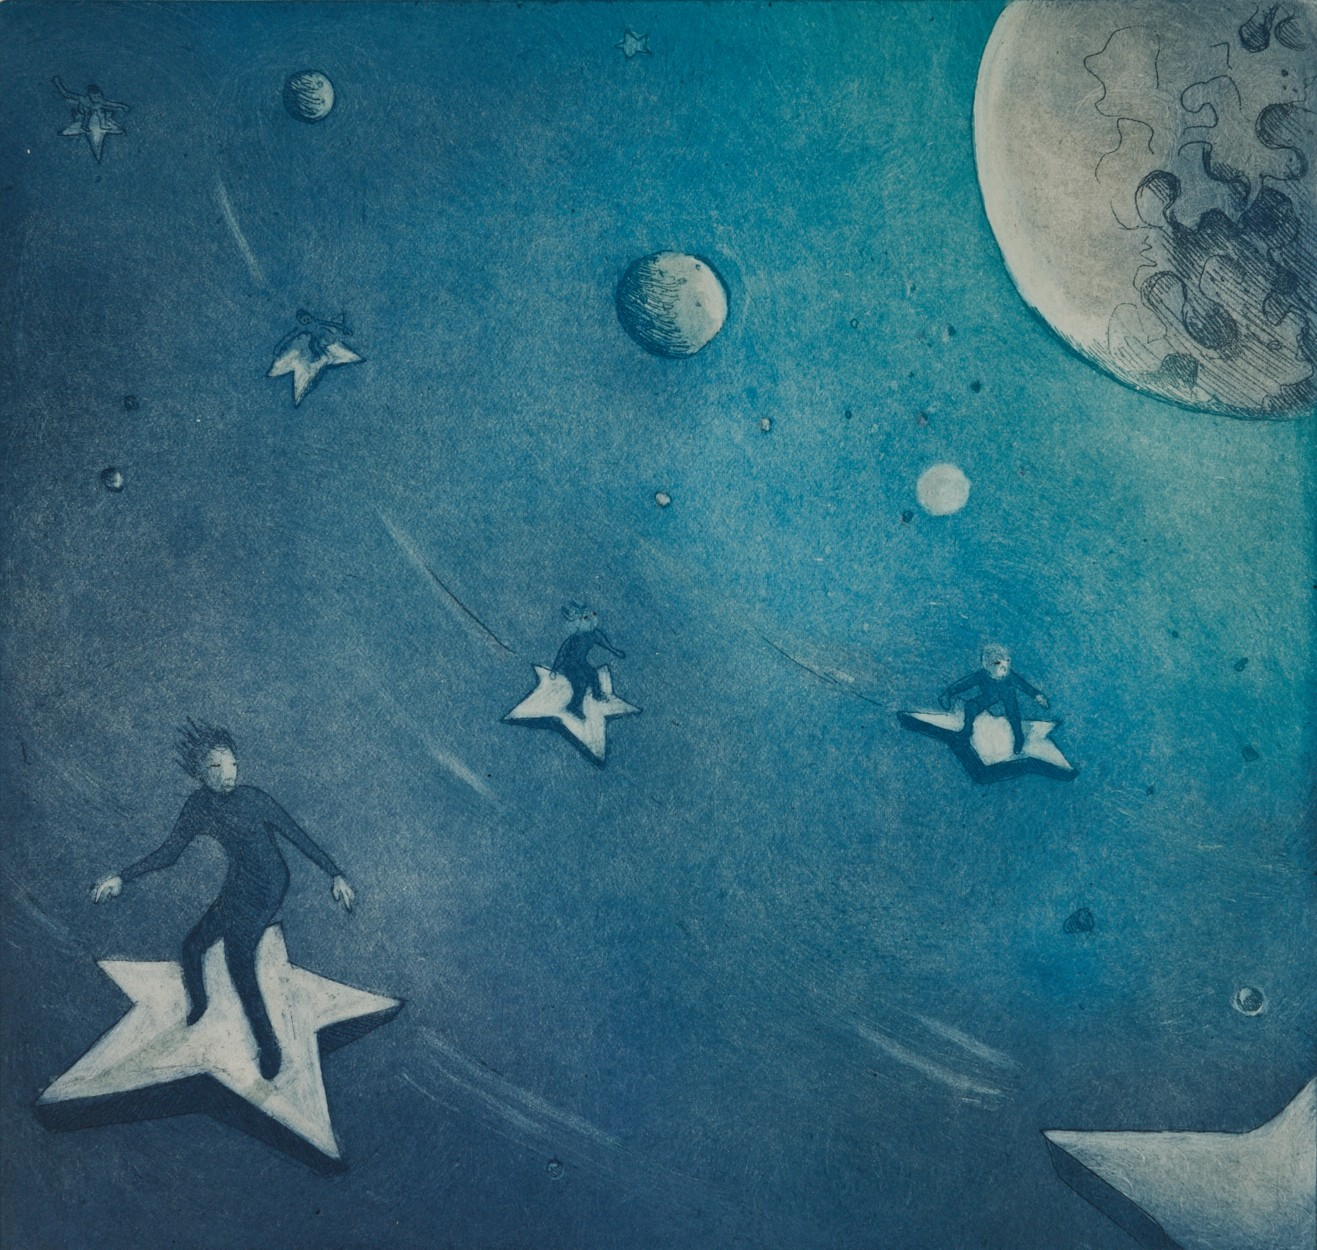 Rebecca Denton, Starsurfers, 2017, £140, etching, edition of 40, Southbank Printmakers